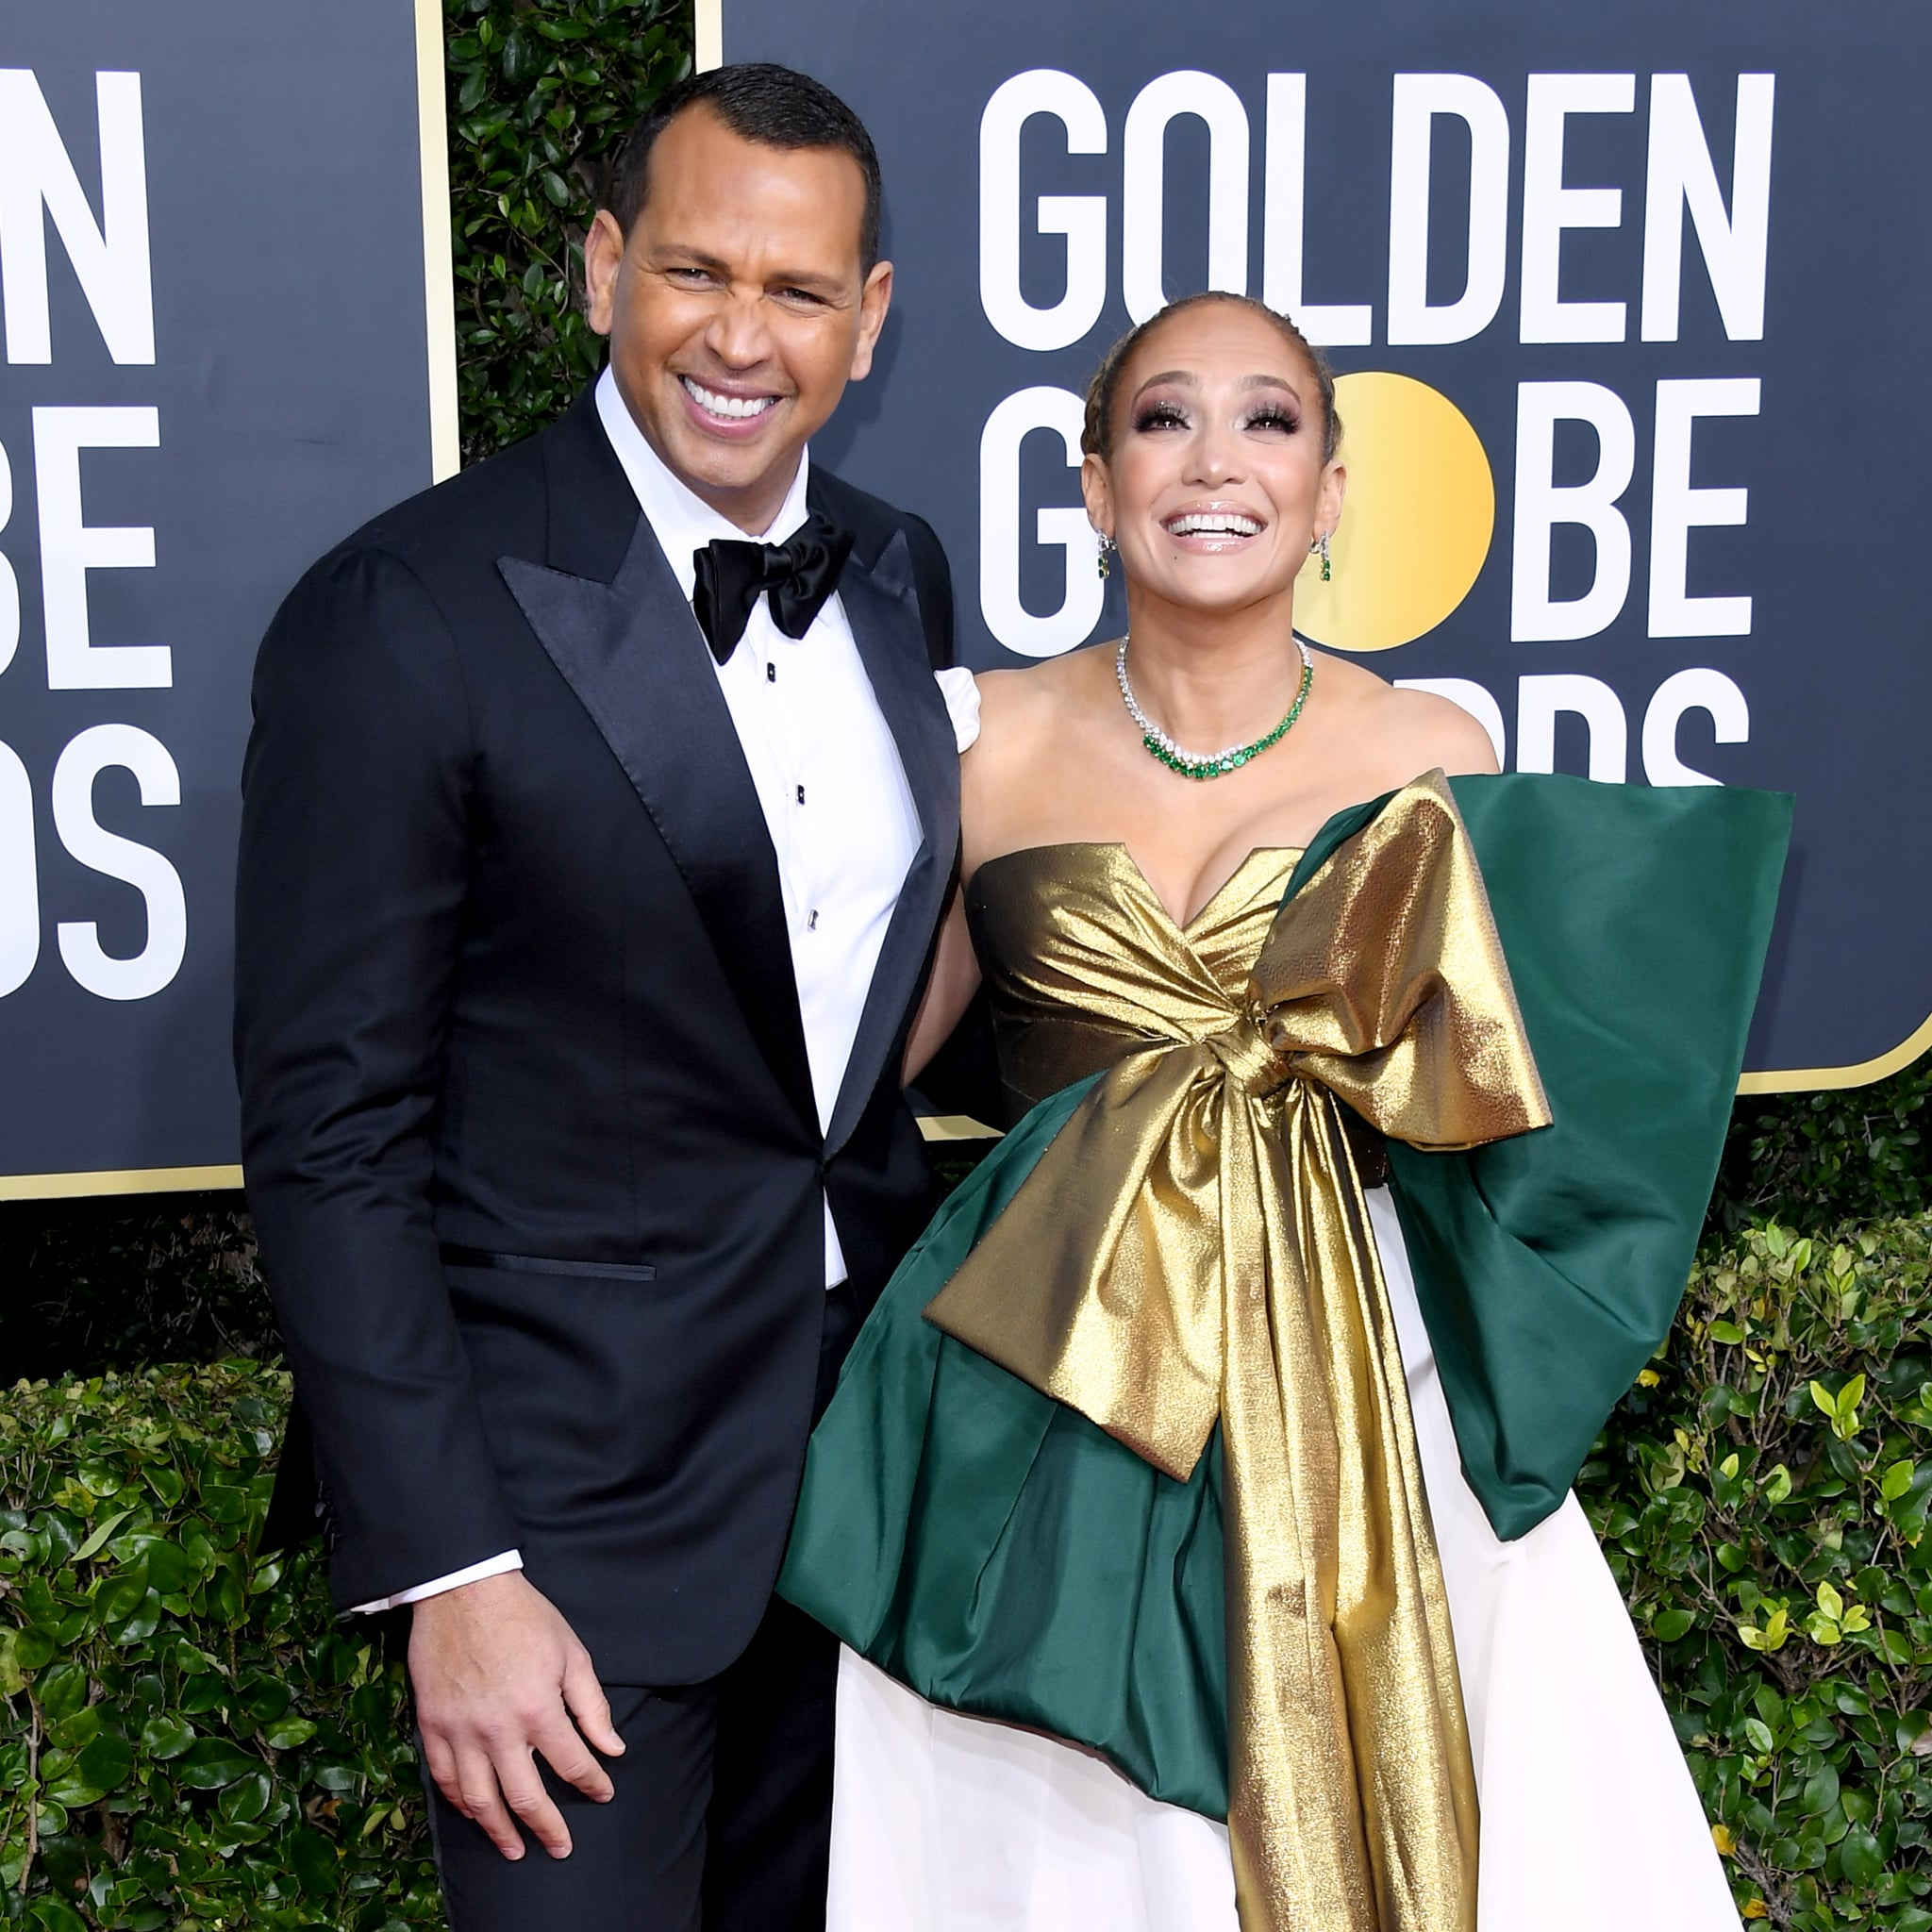 BEVERLY HILLS, CALIFORNIA - JANUARY 05: (L-R) Alex Rodriguez and Jennifer Lopez attend the 77th Annual Golden Globe Awards at The Beverly Hilton Hotel on January 05, 2020 in Beverly Hills, California. (Photo by Daniele Venturelli/WireImage)